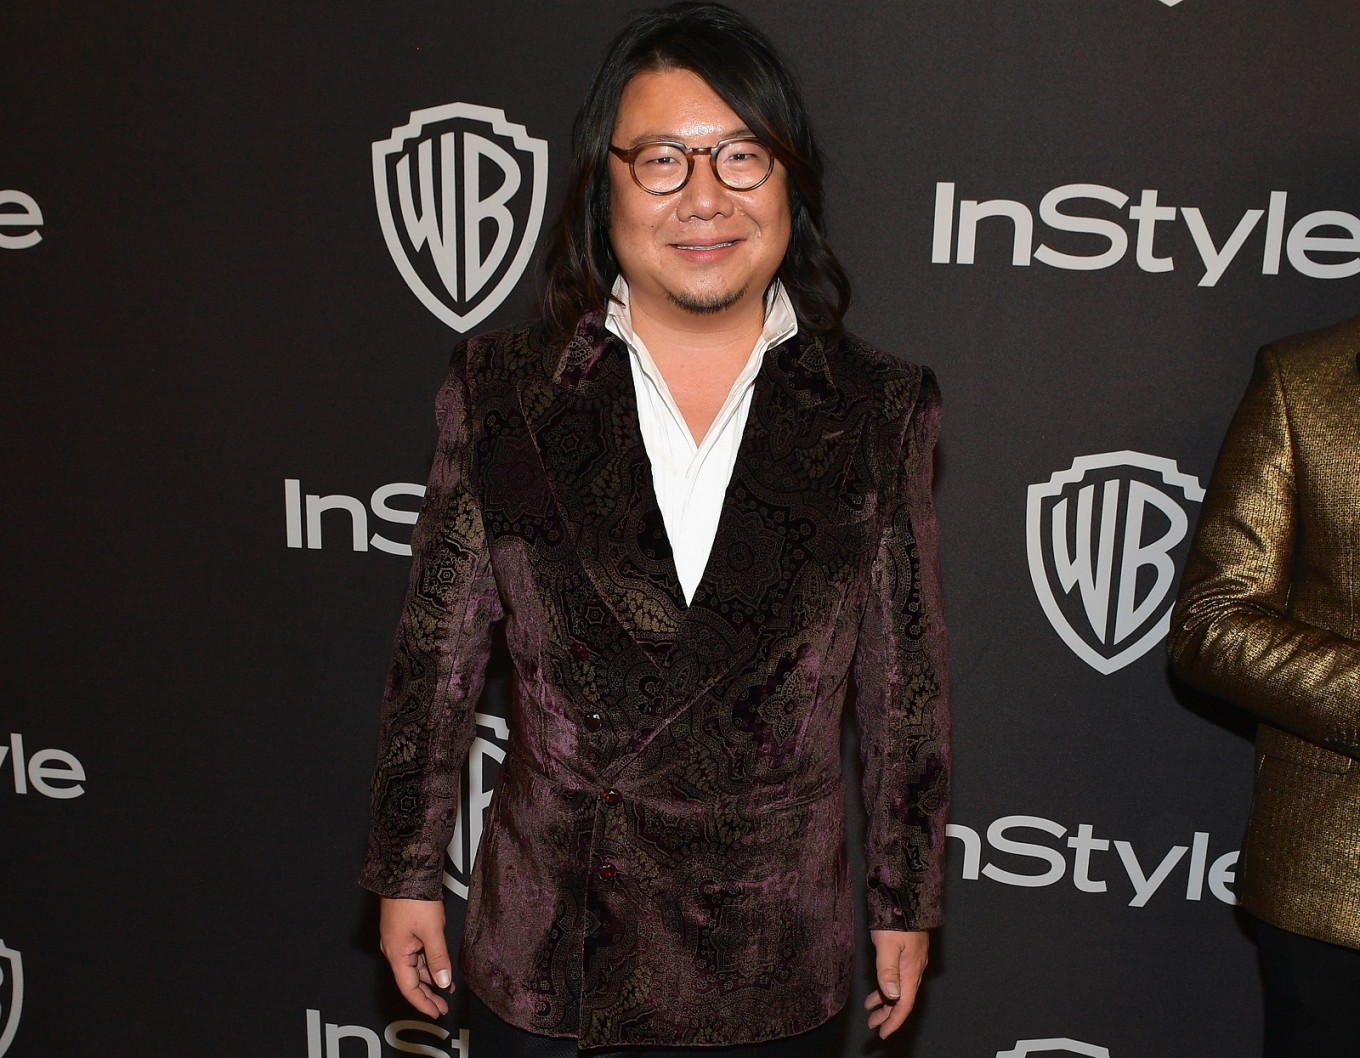 'I see it through a prism of ridiculousness': Kevin Kwan on his new book 'Sex and Vanity'